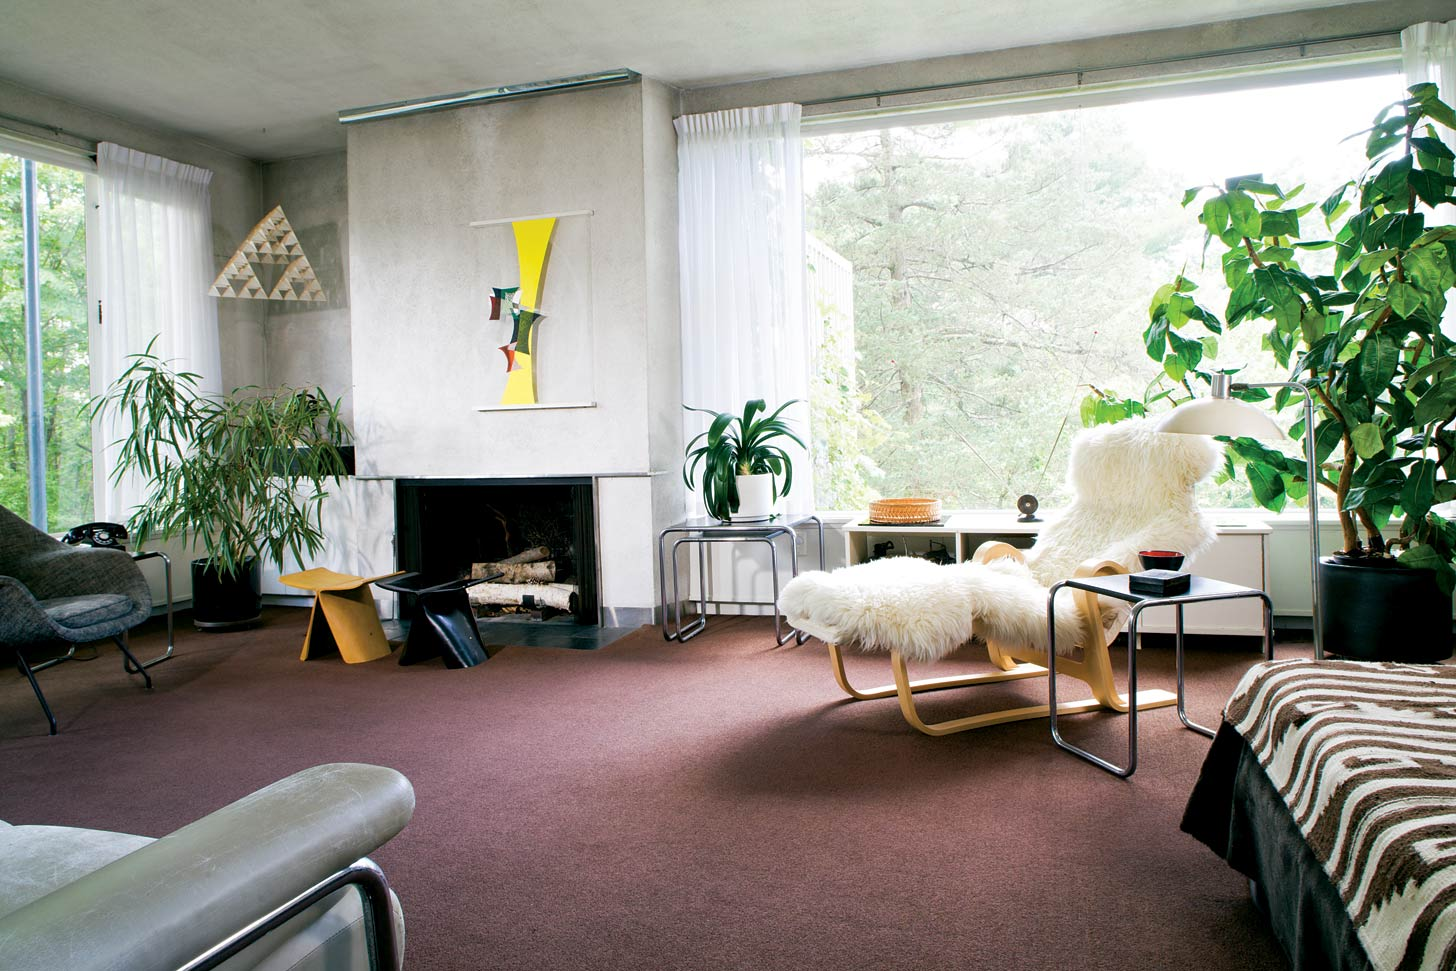 Gropius House. 1938. Interior